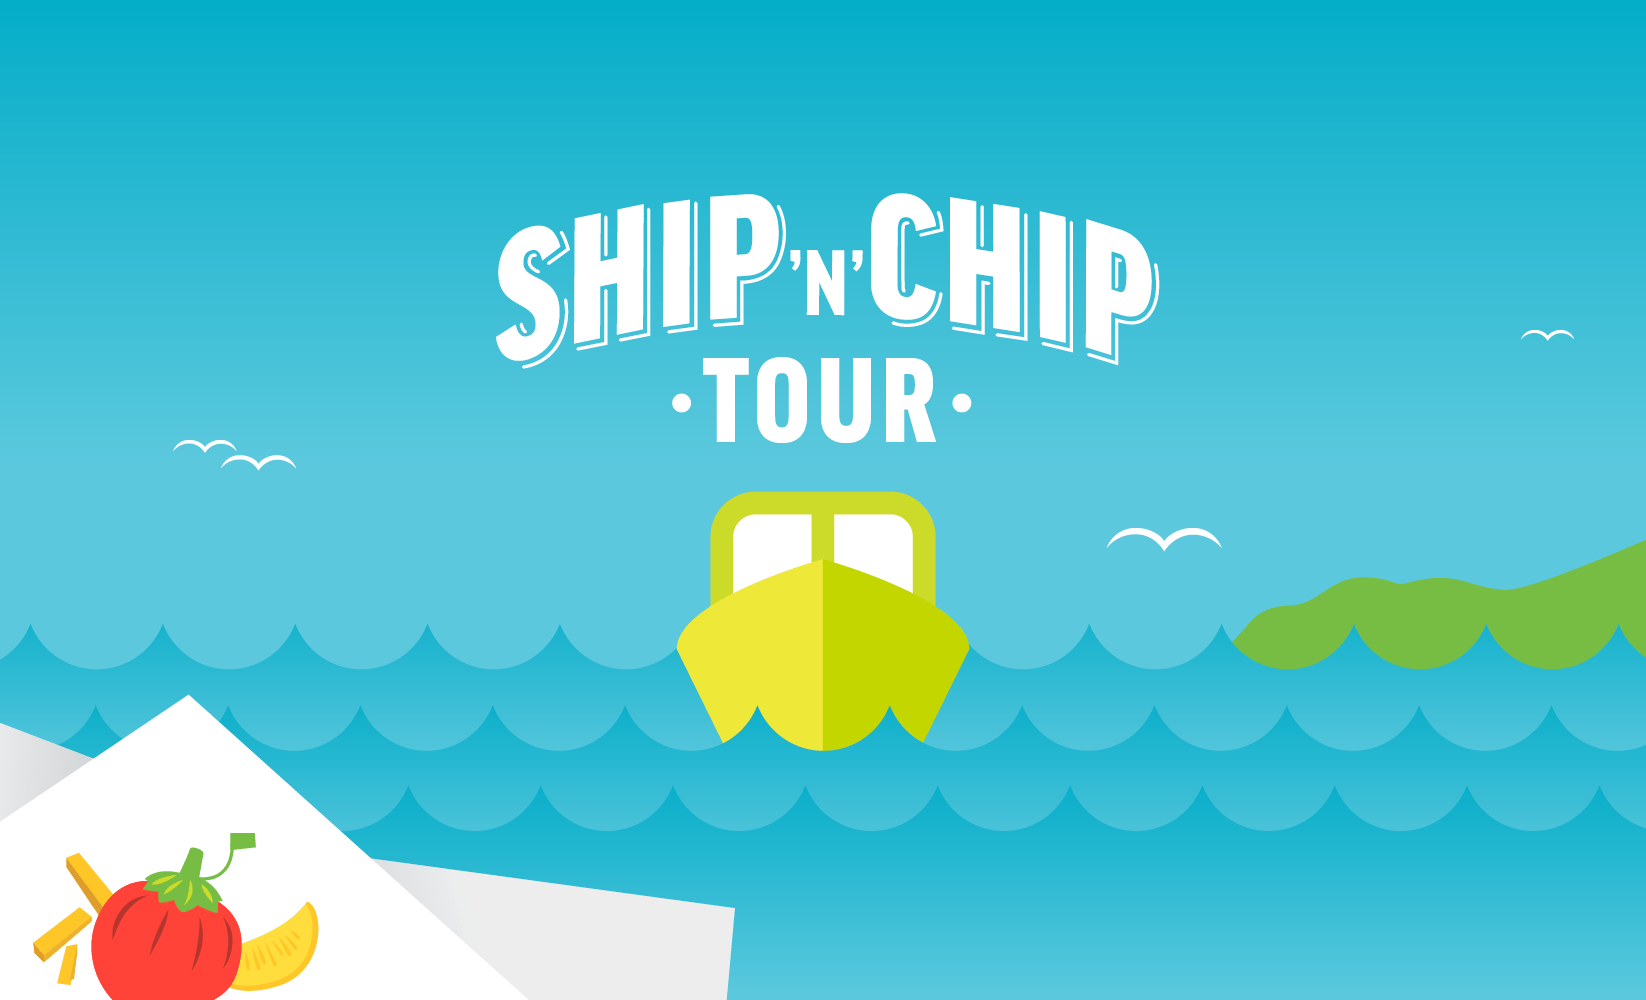 MW Ship'n'Chip web post image 1.03